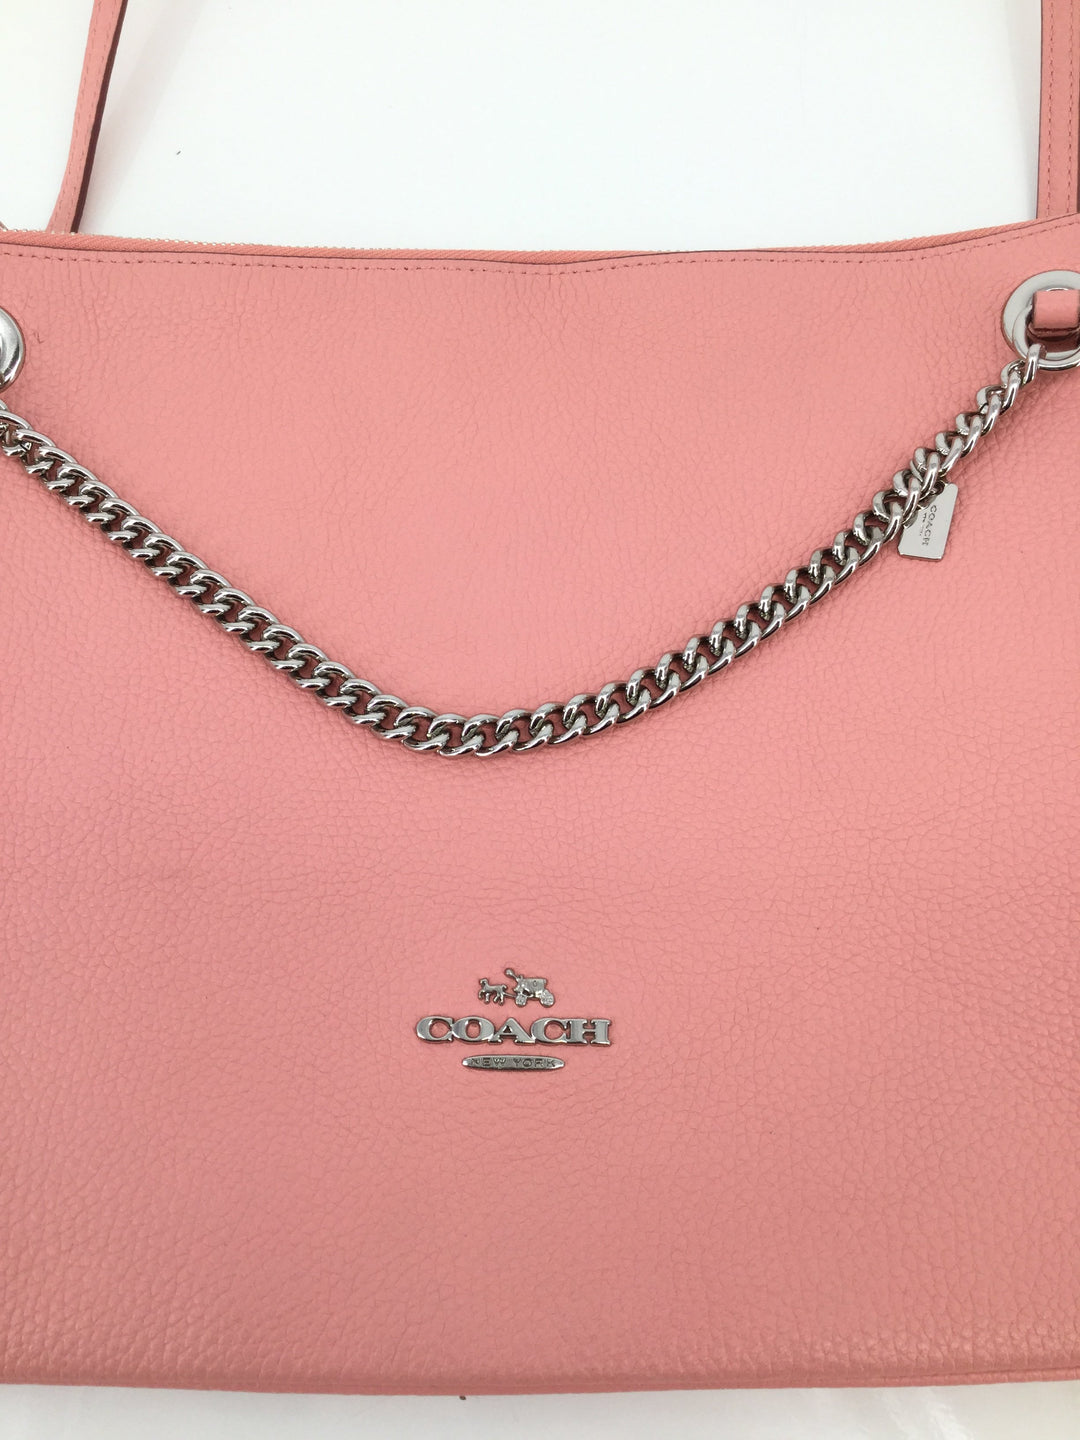 Medium Size Pink Leather Coach Crossbody  - <P>MEDIUM SIZED PINK LEATHER COACH CROSSBODY WITH SILVER CHAIN DETAILING. PINK INTERIOR WITH CLASSIC COACH PATTERN. GENTLY USED CONDITION.</P>